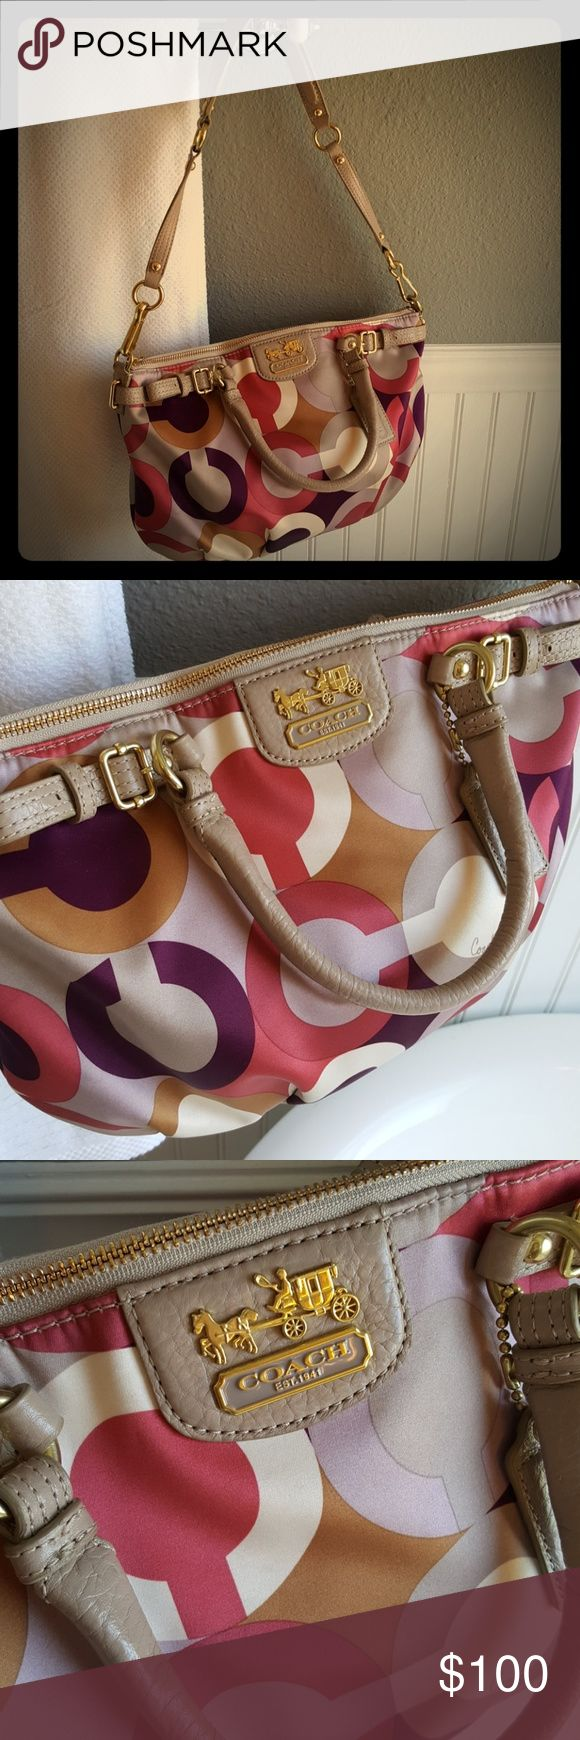 GORGEOUS CONDITION Coach Purse! Selling a GORGEOUS CONDITION Coach Purse! This purse is in impecable condition, very clean just a minor spot on the back side behind the left hardware of handle. I will leave up to buyer to get the spot out. This purse is absolutely gorgeous! Beautiful colors! This has the stage coach emblem which is a unique feature. Coach Bags